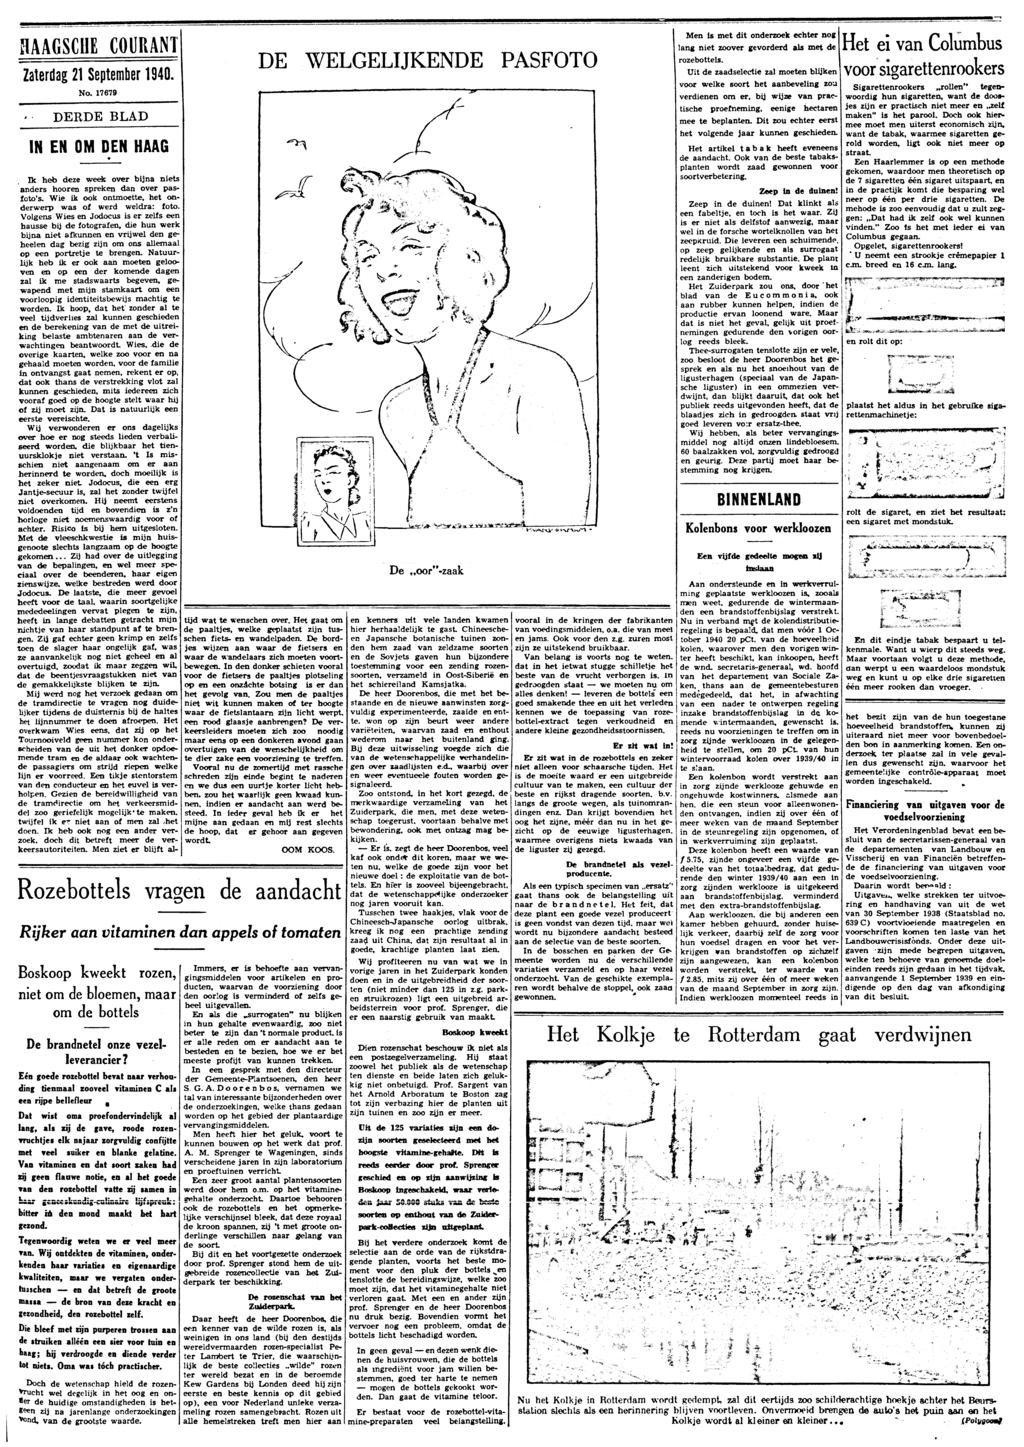 0f88fc2bddfdad de Zij Er mog 1 lever we HAAGSCHE COURANT Zaterdag 21 September 1940 IN EN  No